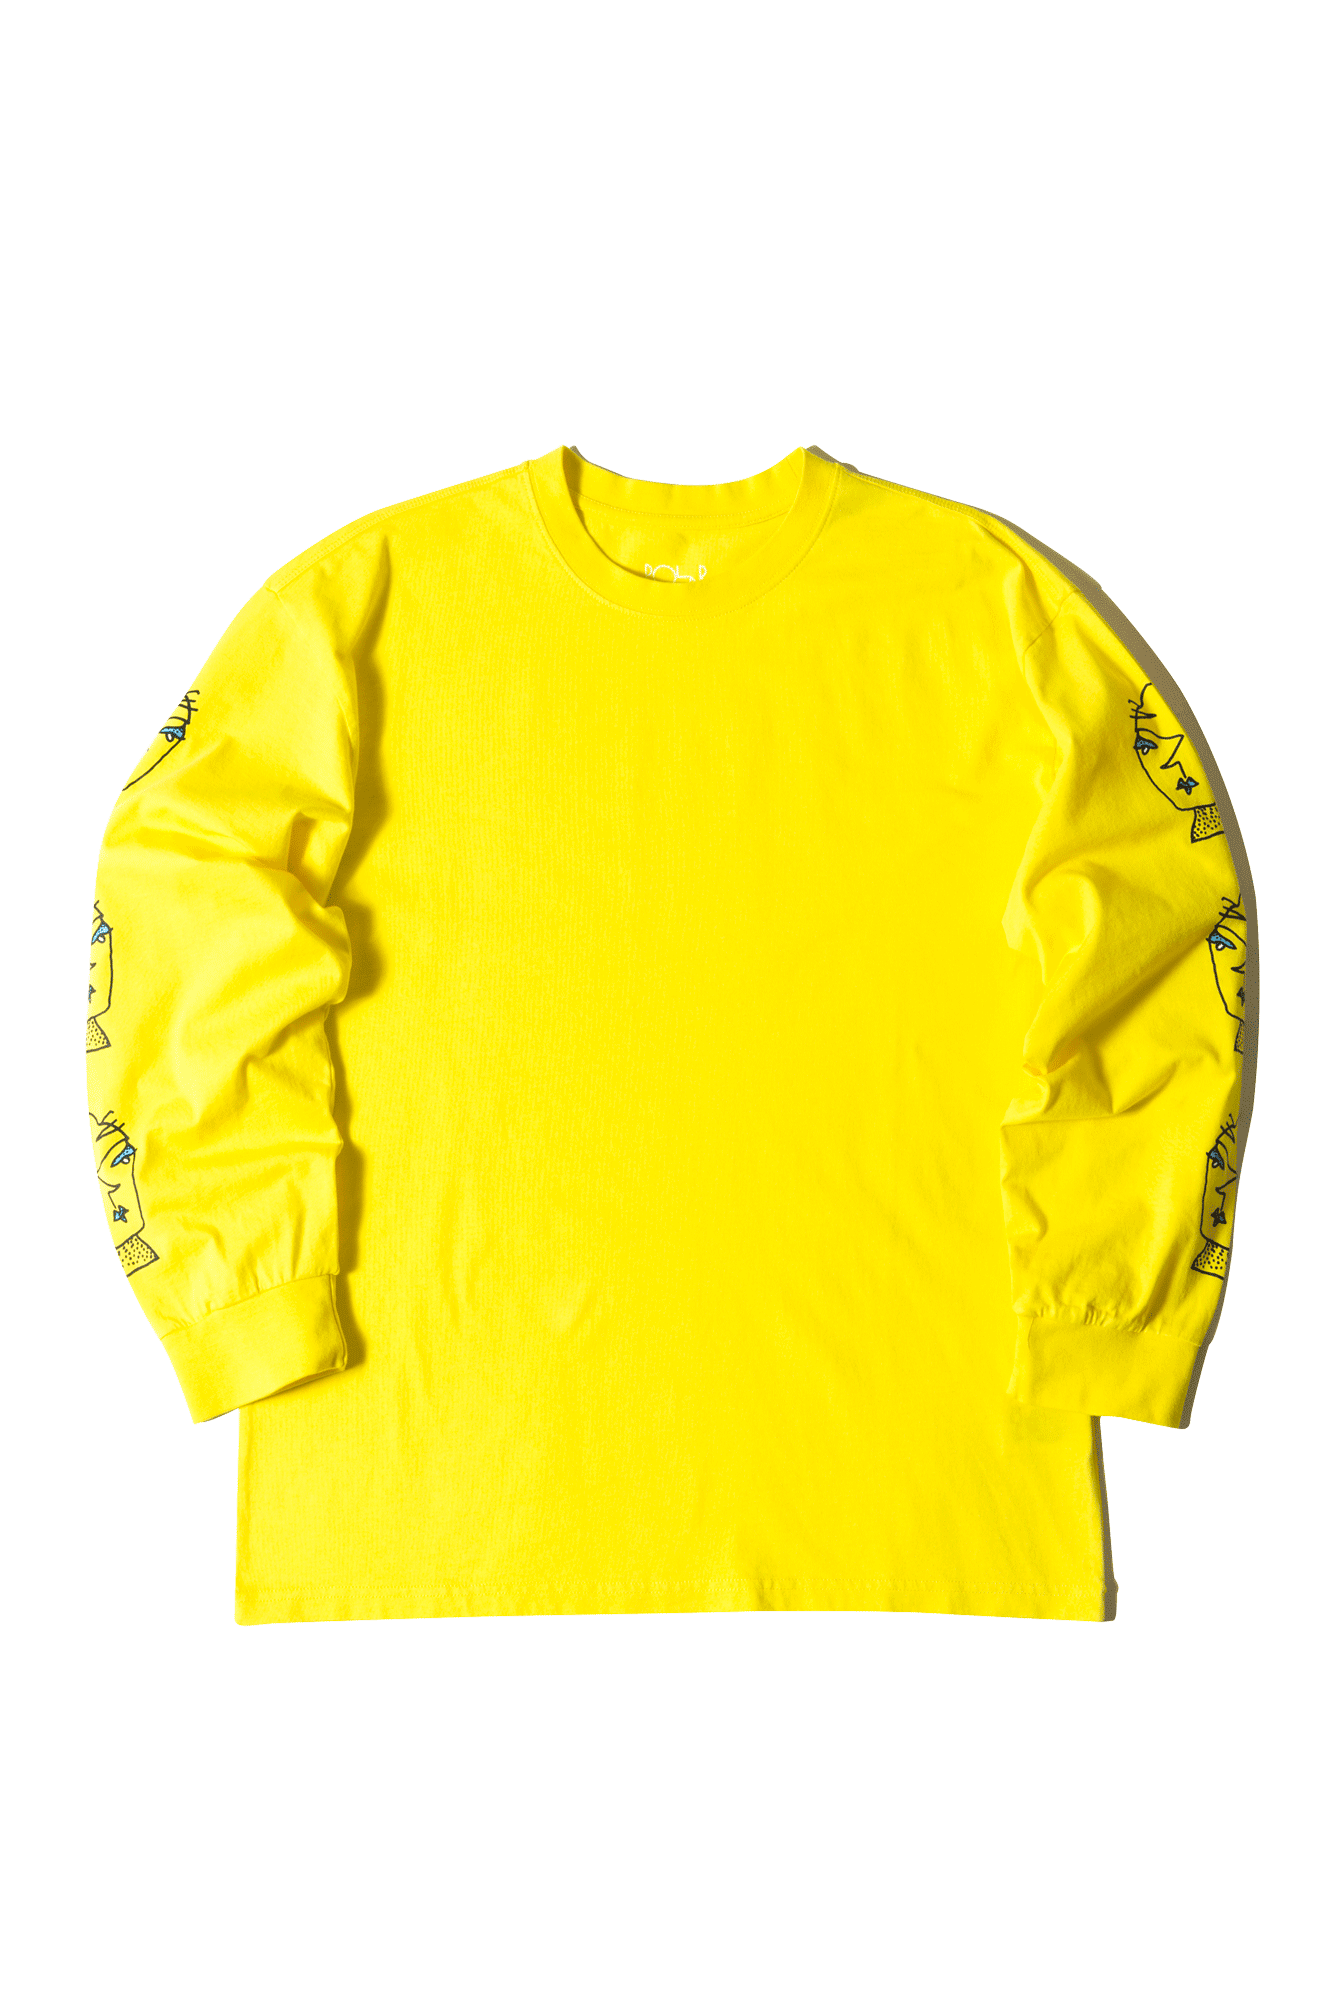 Polar Long sleeve T-Shirts Head L/S Tee Multicolor POL-HEADLS#000#SY#XS - One Block Down